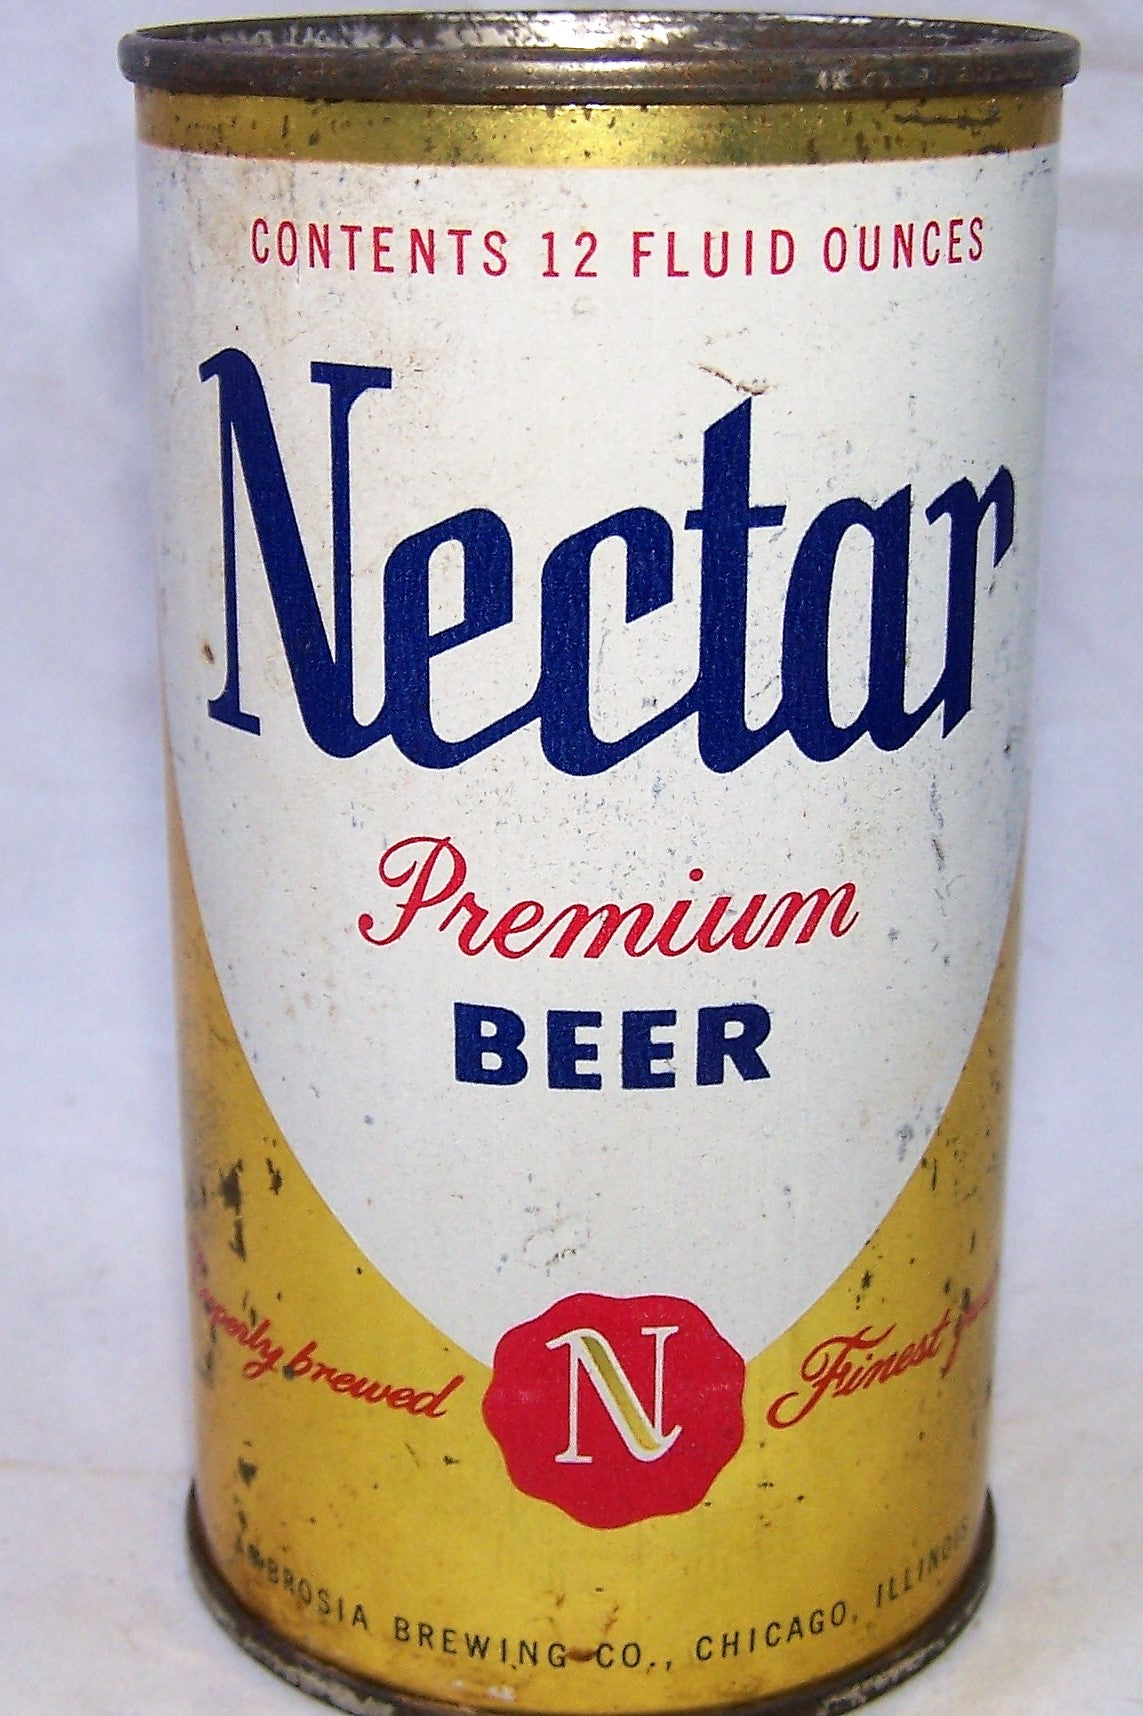 Nectar Premium Beer, Chicago, Grade 1-